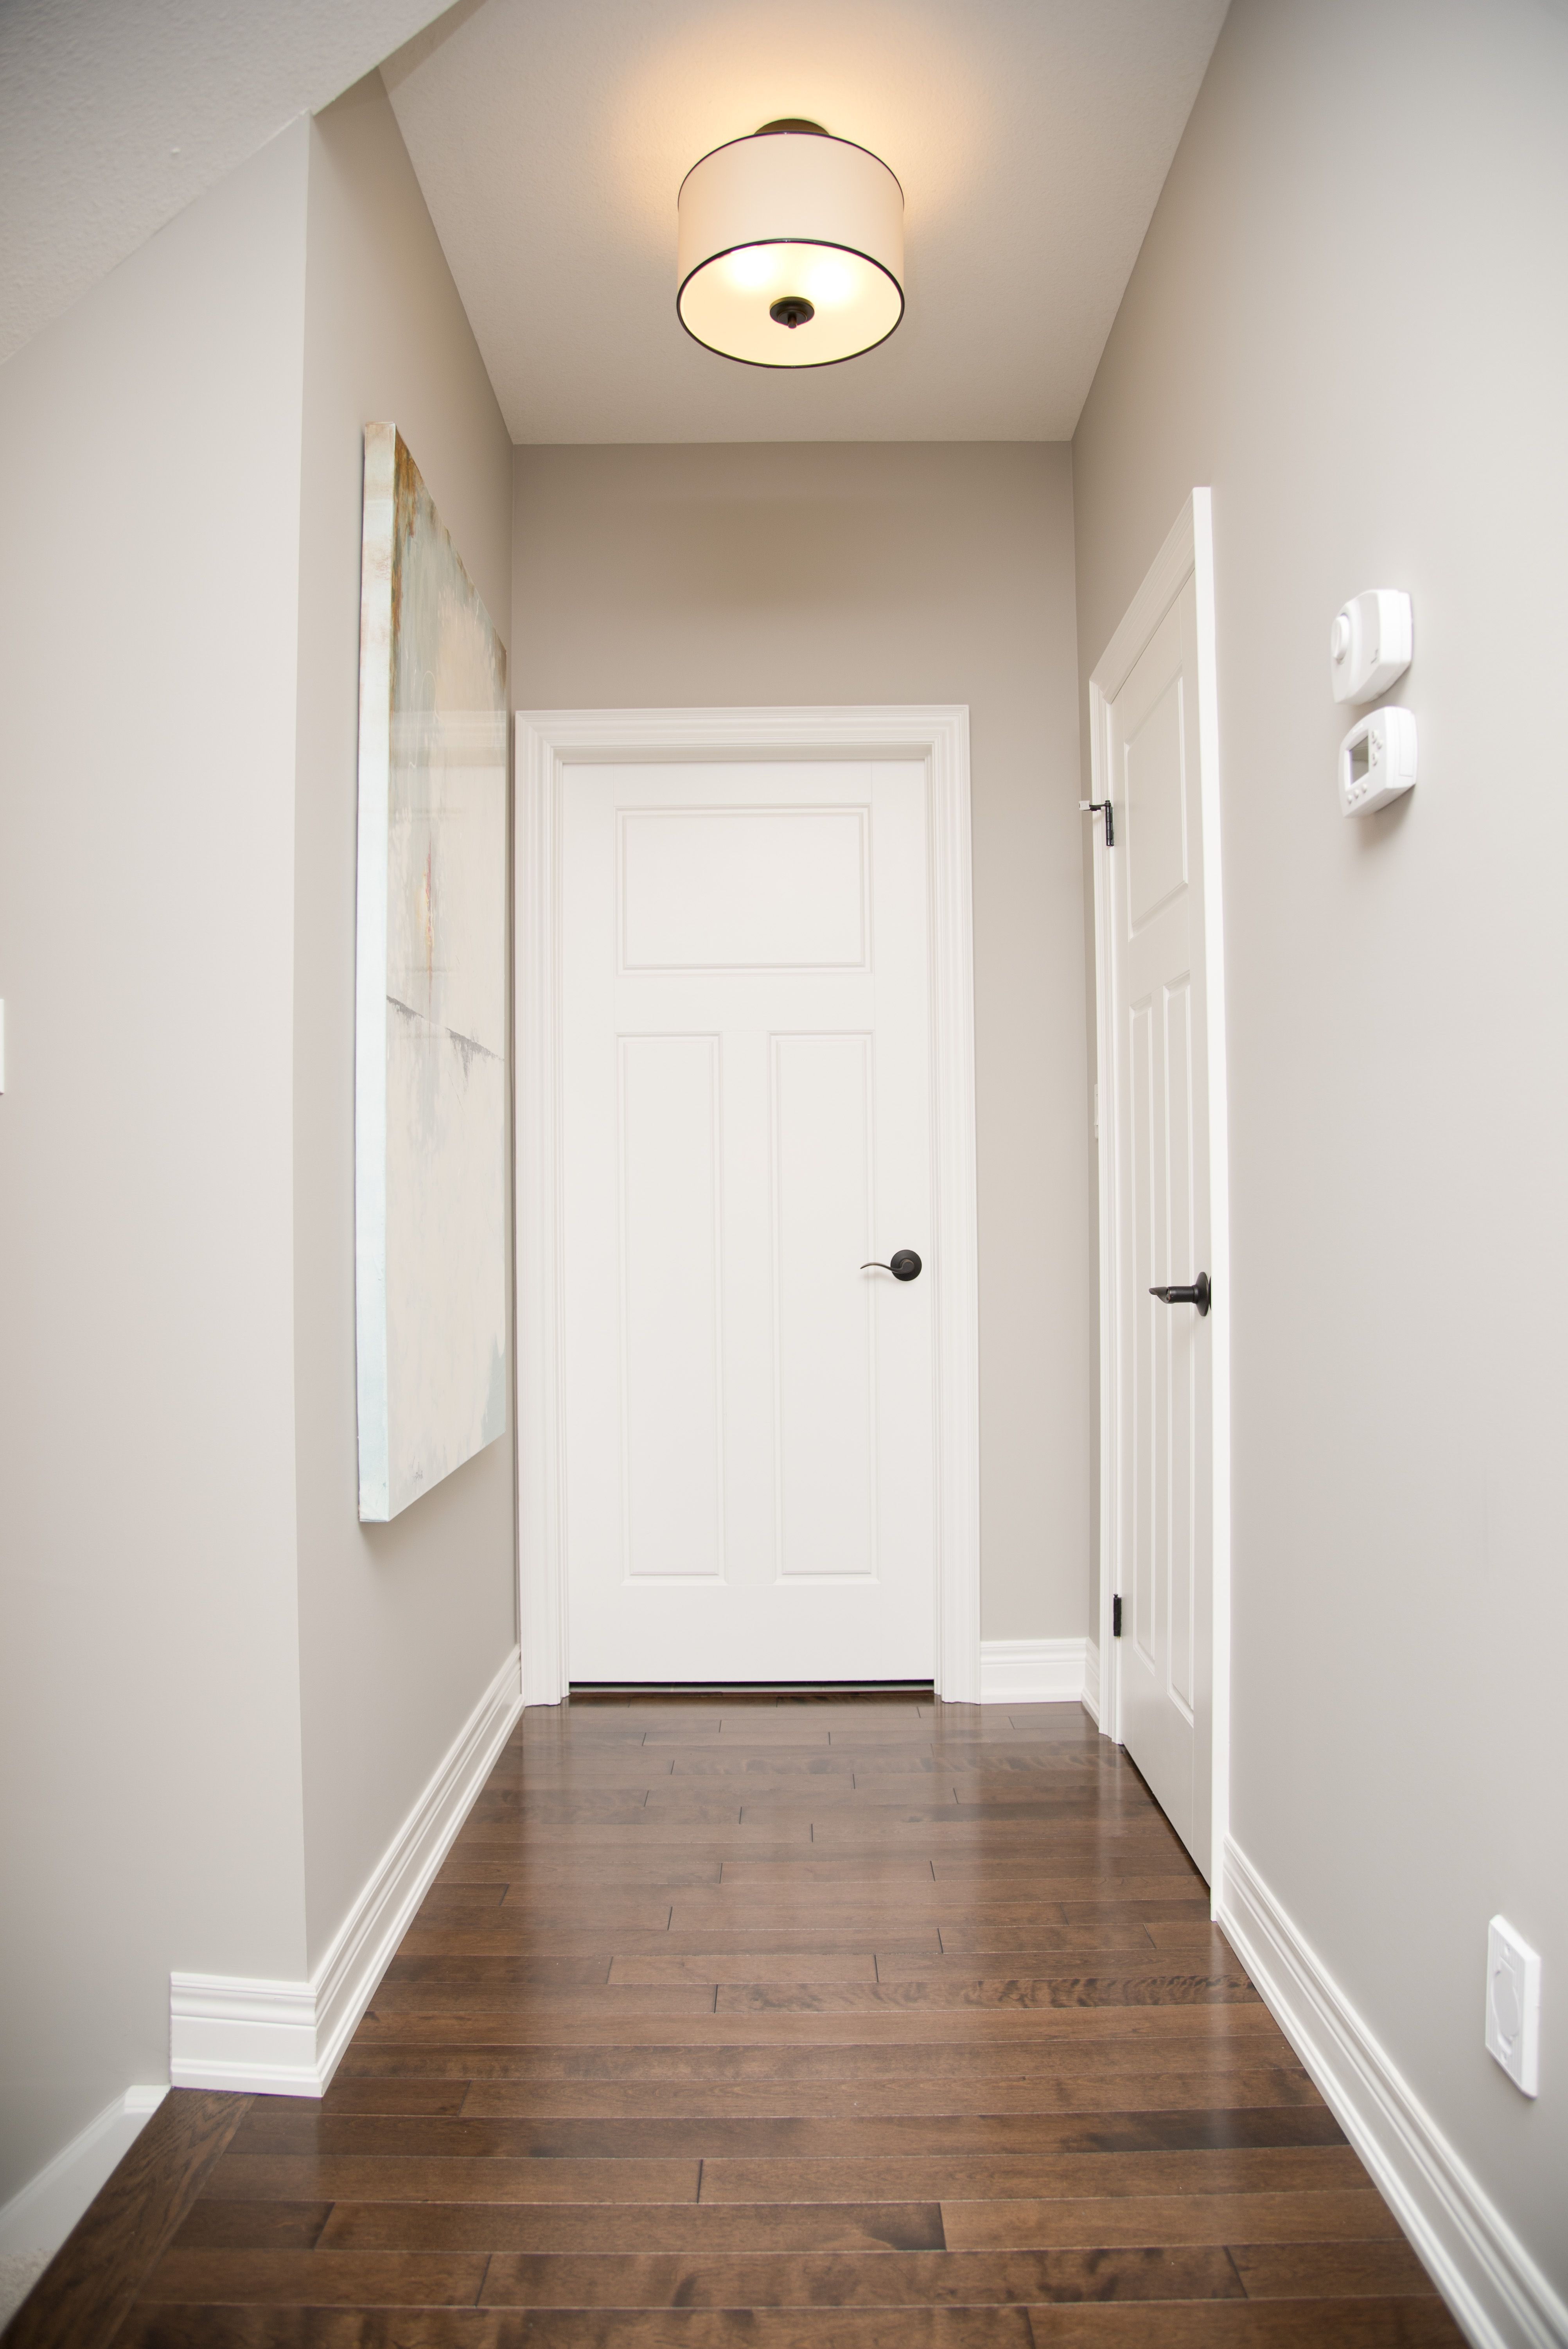 A neutral wall colour paired with bright white trim